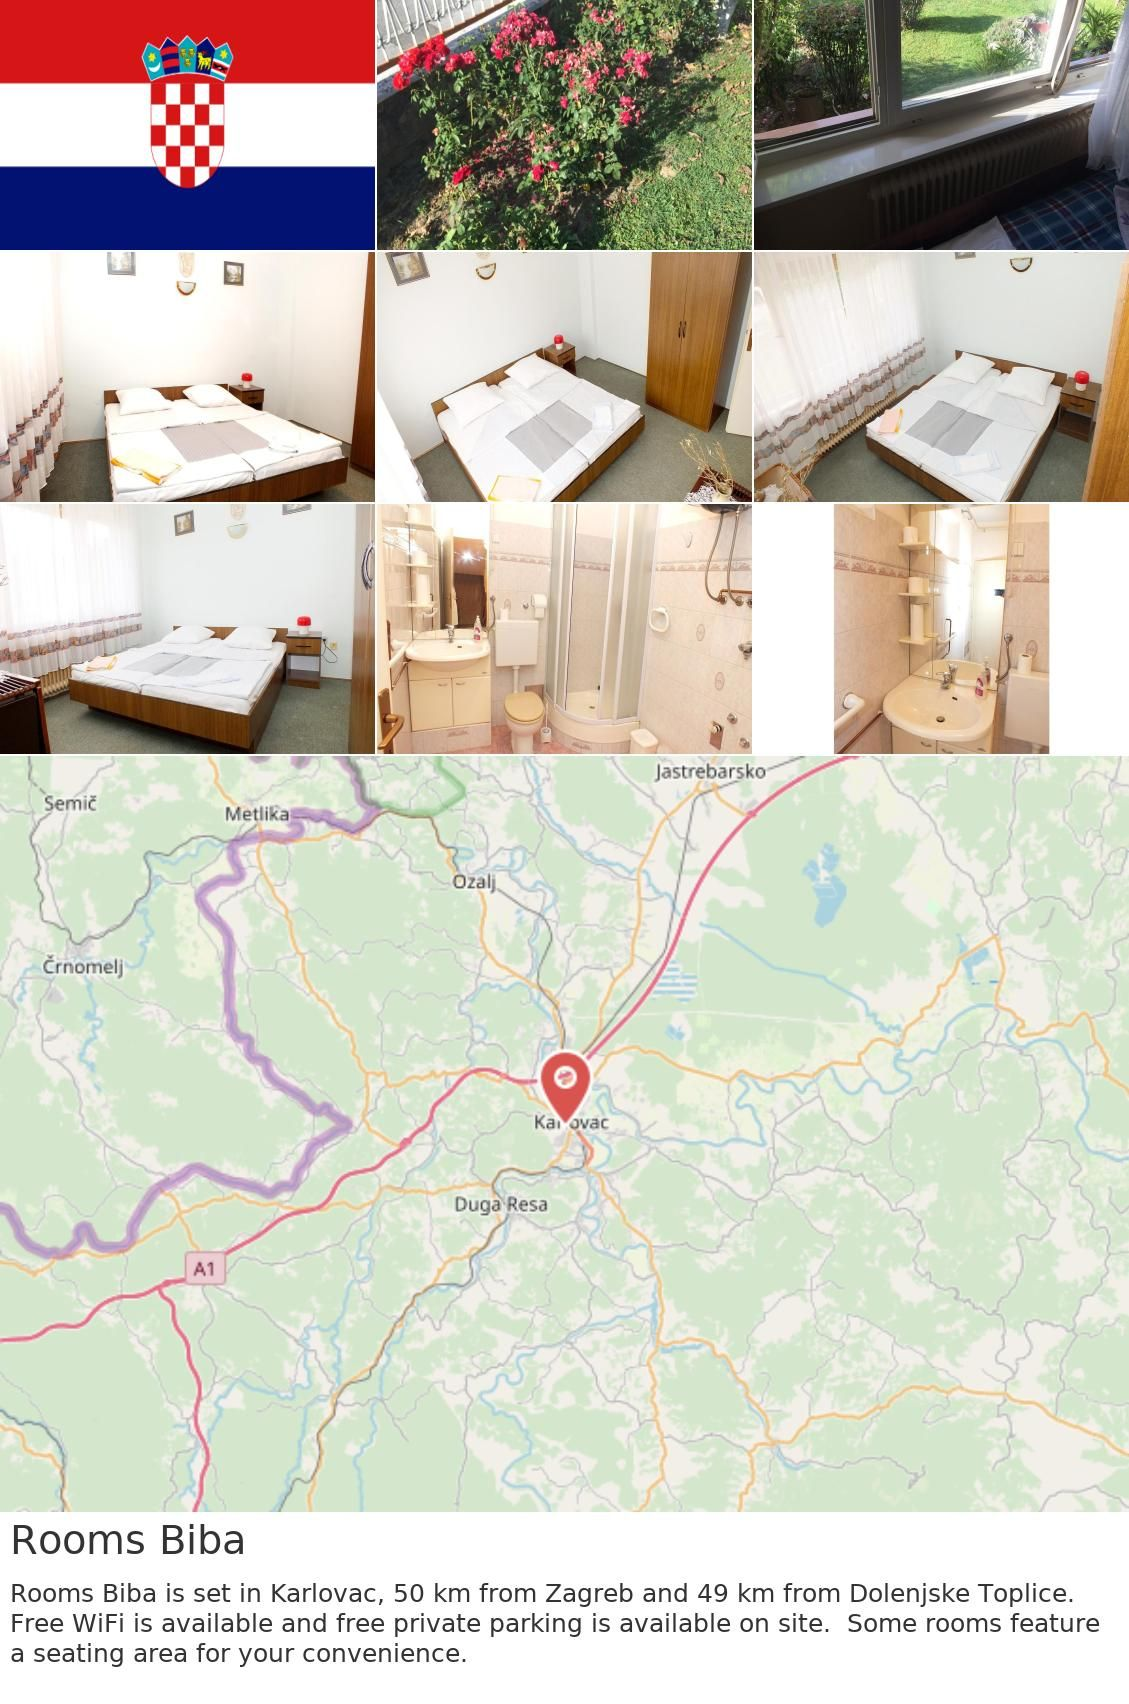 Europe Croatia Karlovac Rooms Biba Rooms Biba Is Set In Karlovac 50 Km From Zagreb And 49 Km From Dolenjske Toplice Free Wifi Is Available And Free Privat